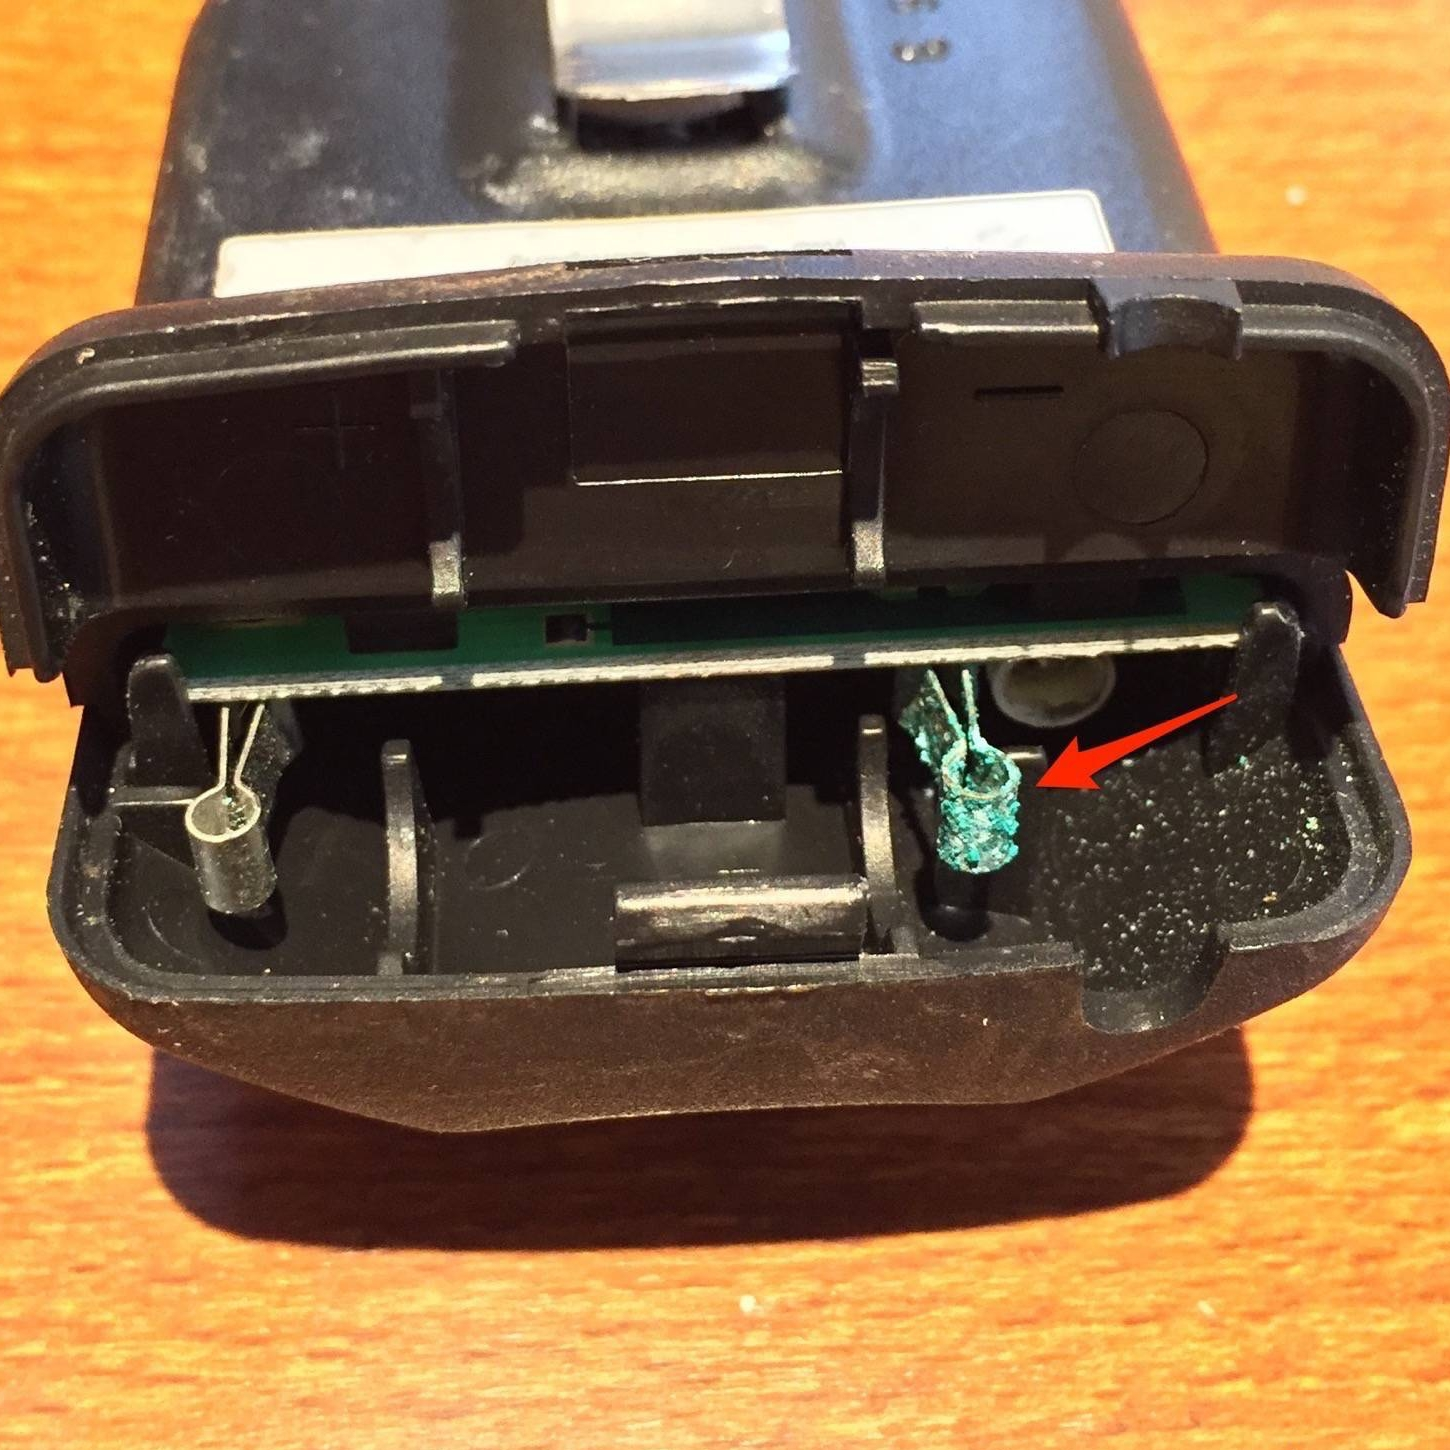 Corrosion on Genie remote battery contacts